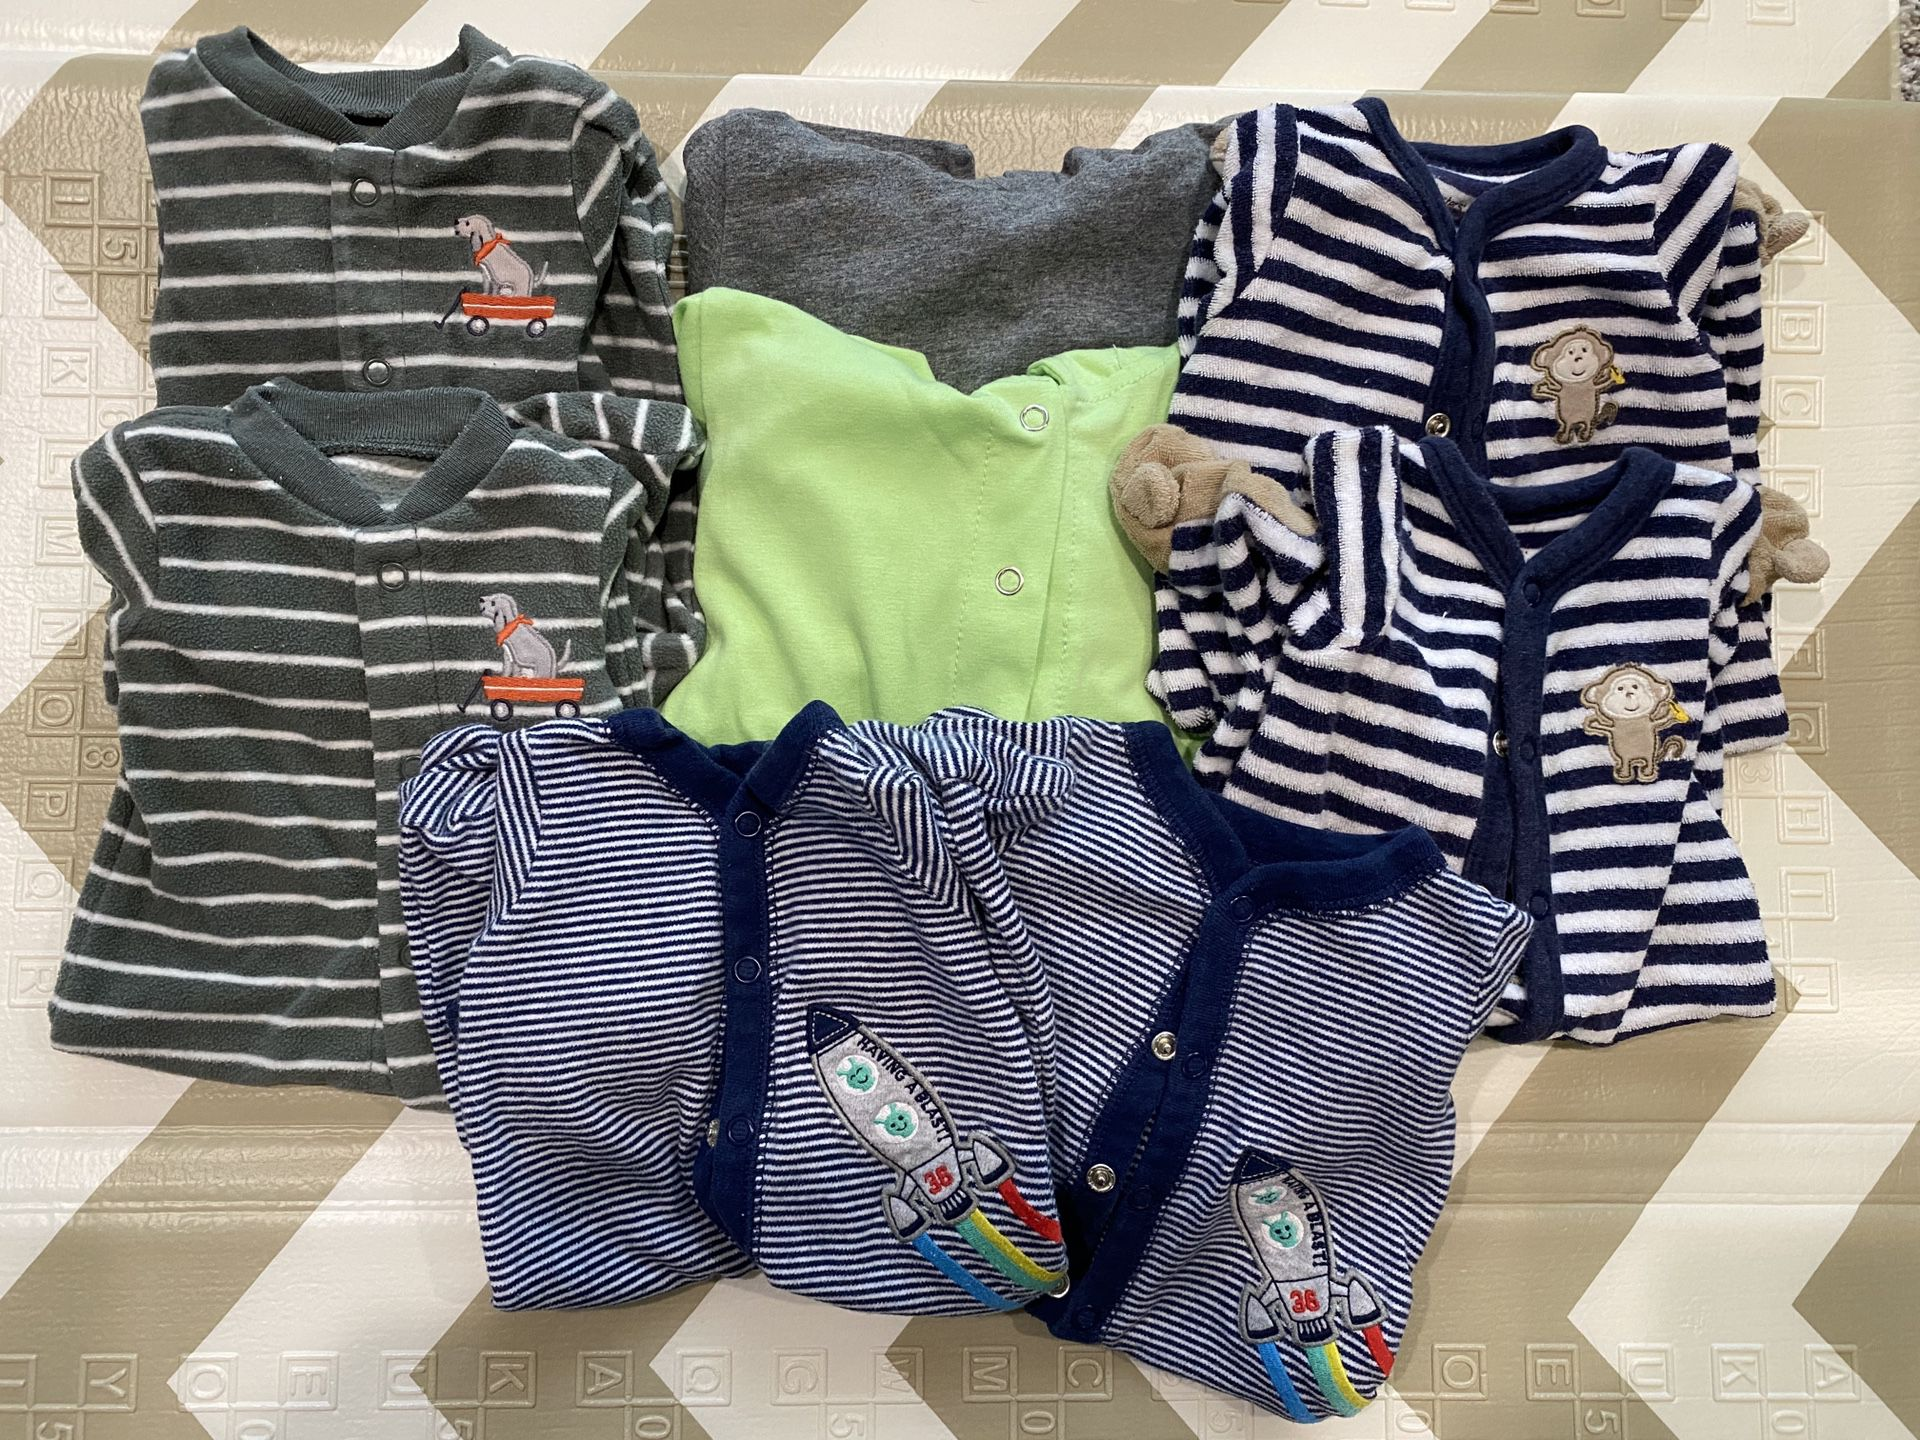 Newborn Twin Bundle w/3 sets of PJ's & specialty Dino outfits